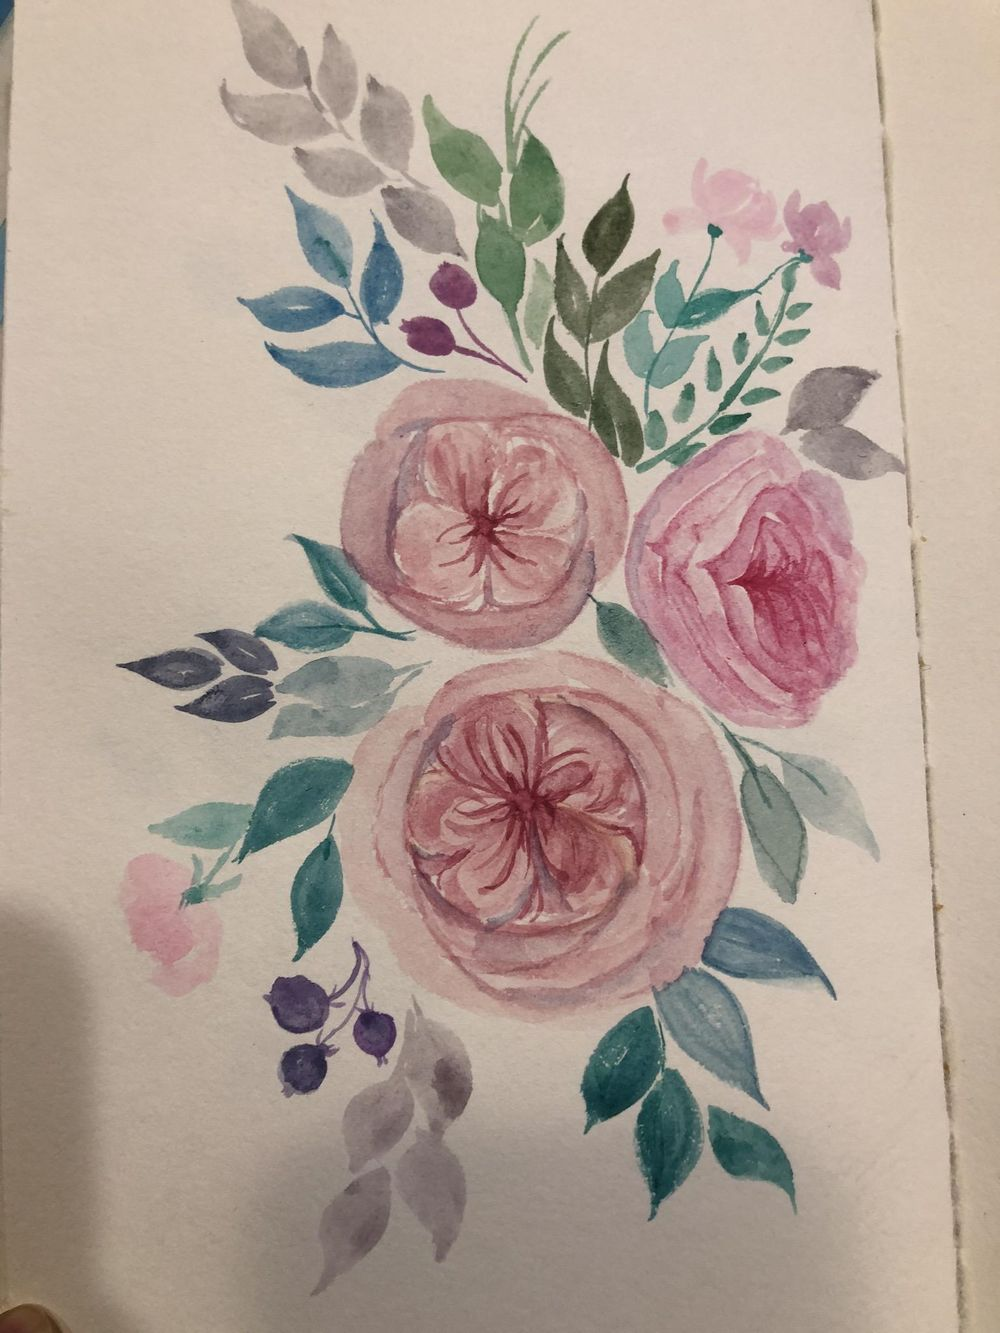 English rose - image 1 - student project